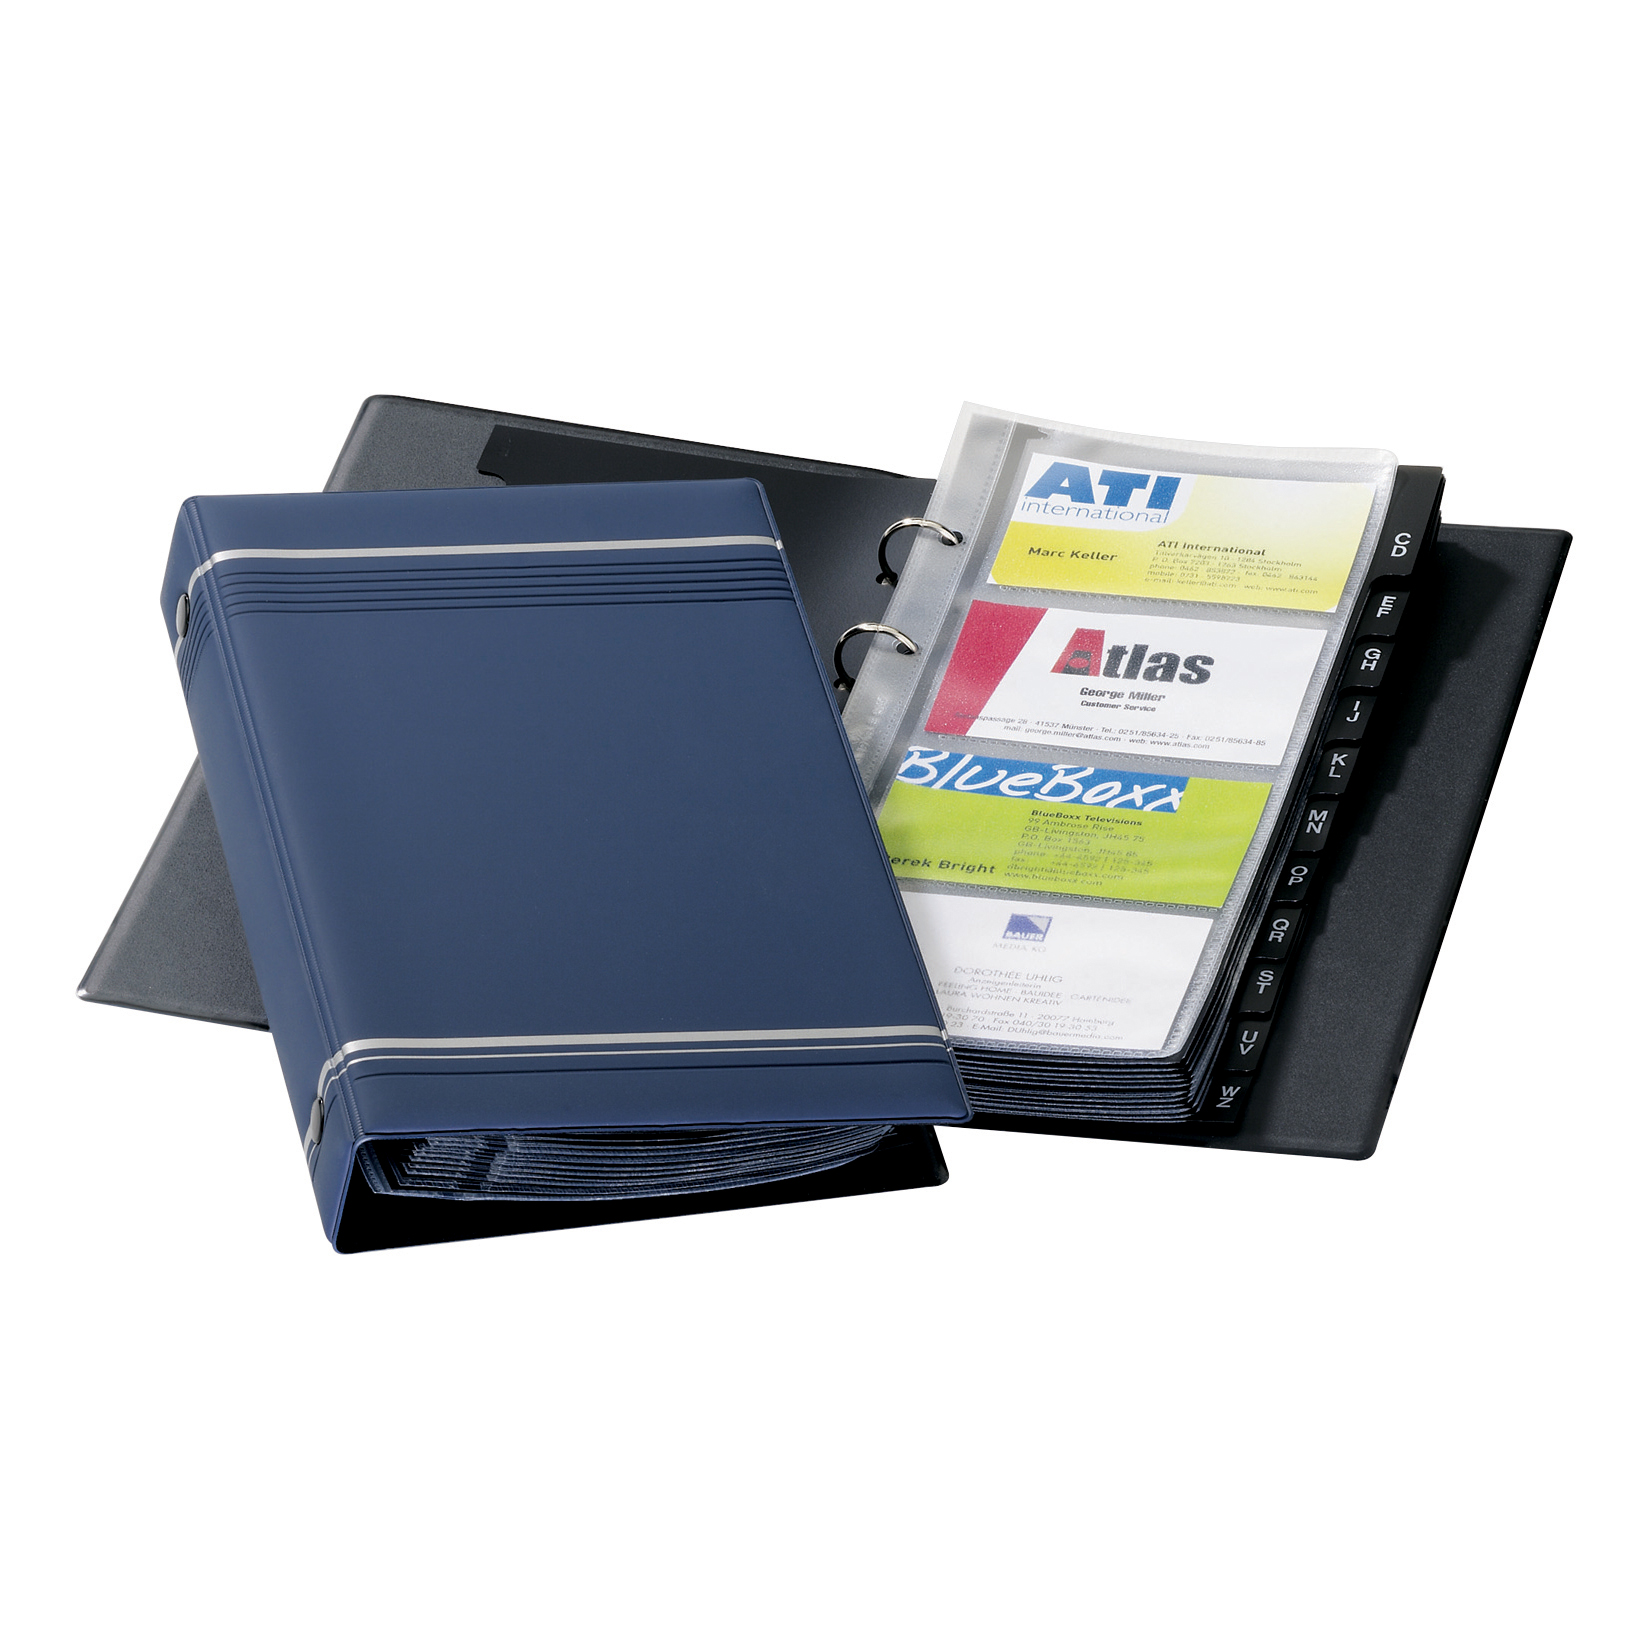 Binders Durable Visifix Business Card Album 4-ring A-Z Index Capacity 200 W145xH255mm Dark Blue Ref 2385-07